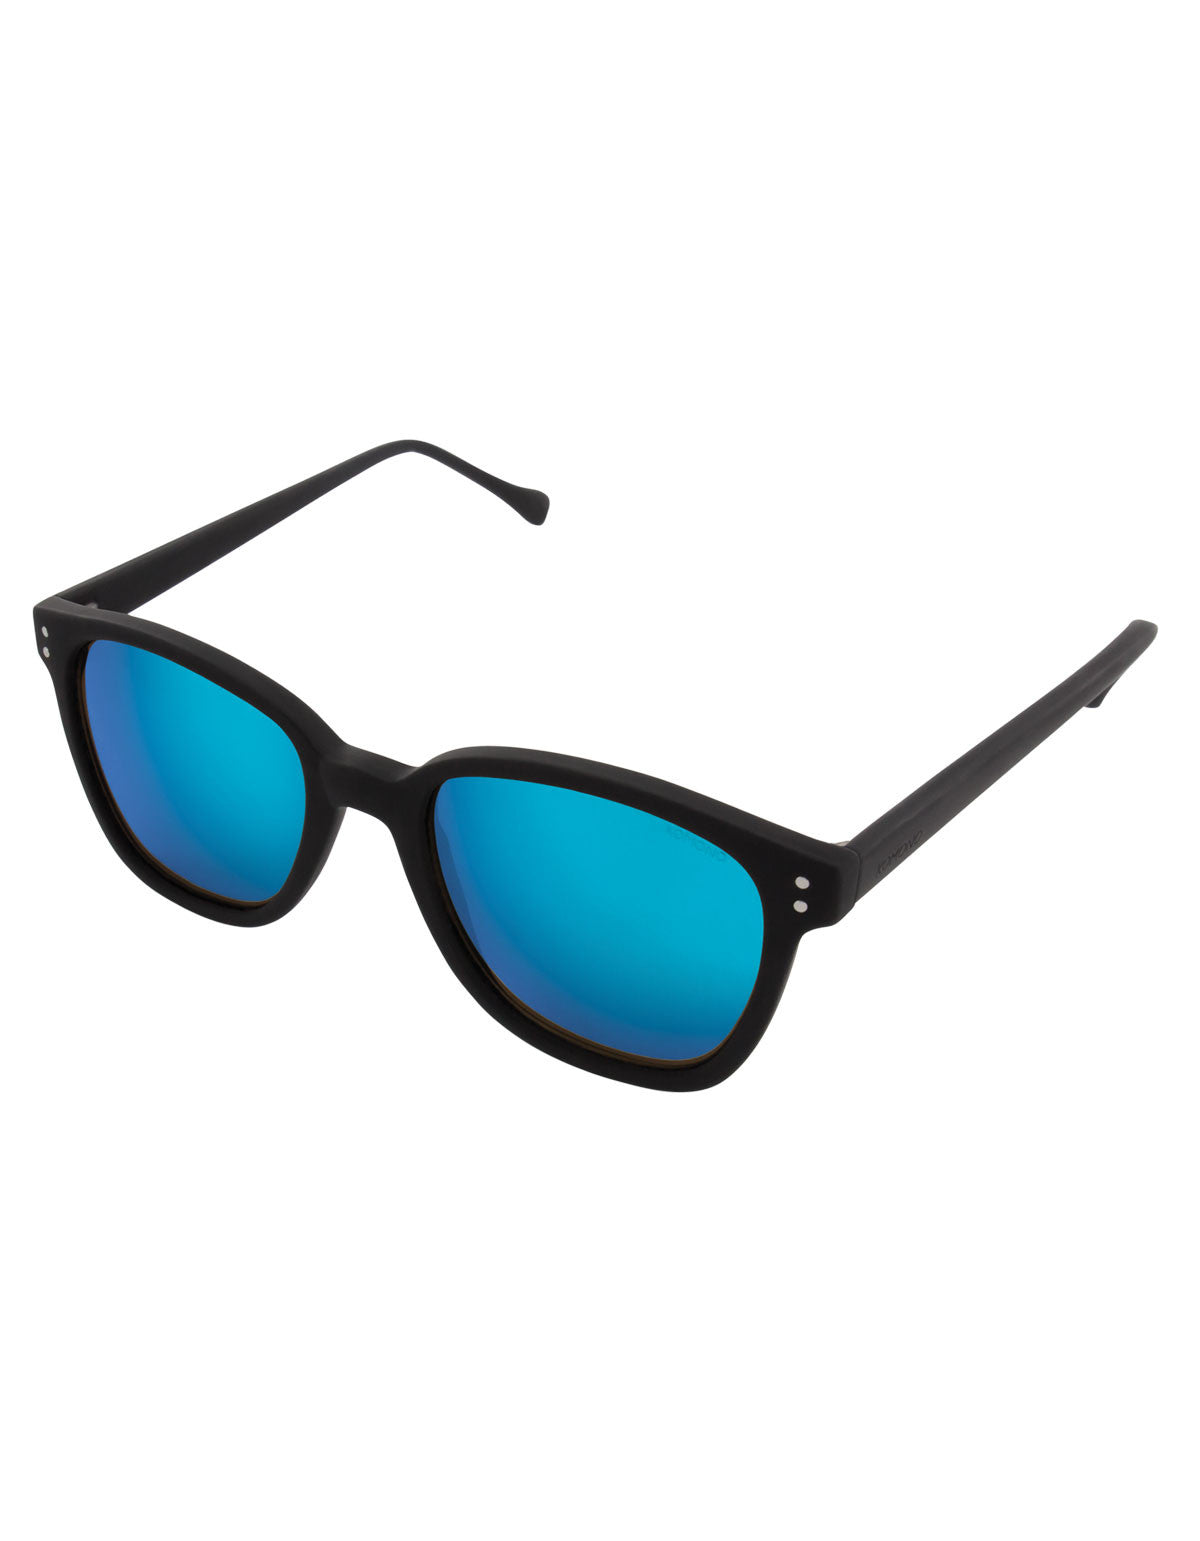 Komono Renee Sunglasses Black Rubber Blue Mirror - Still Life - 2